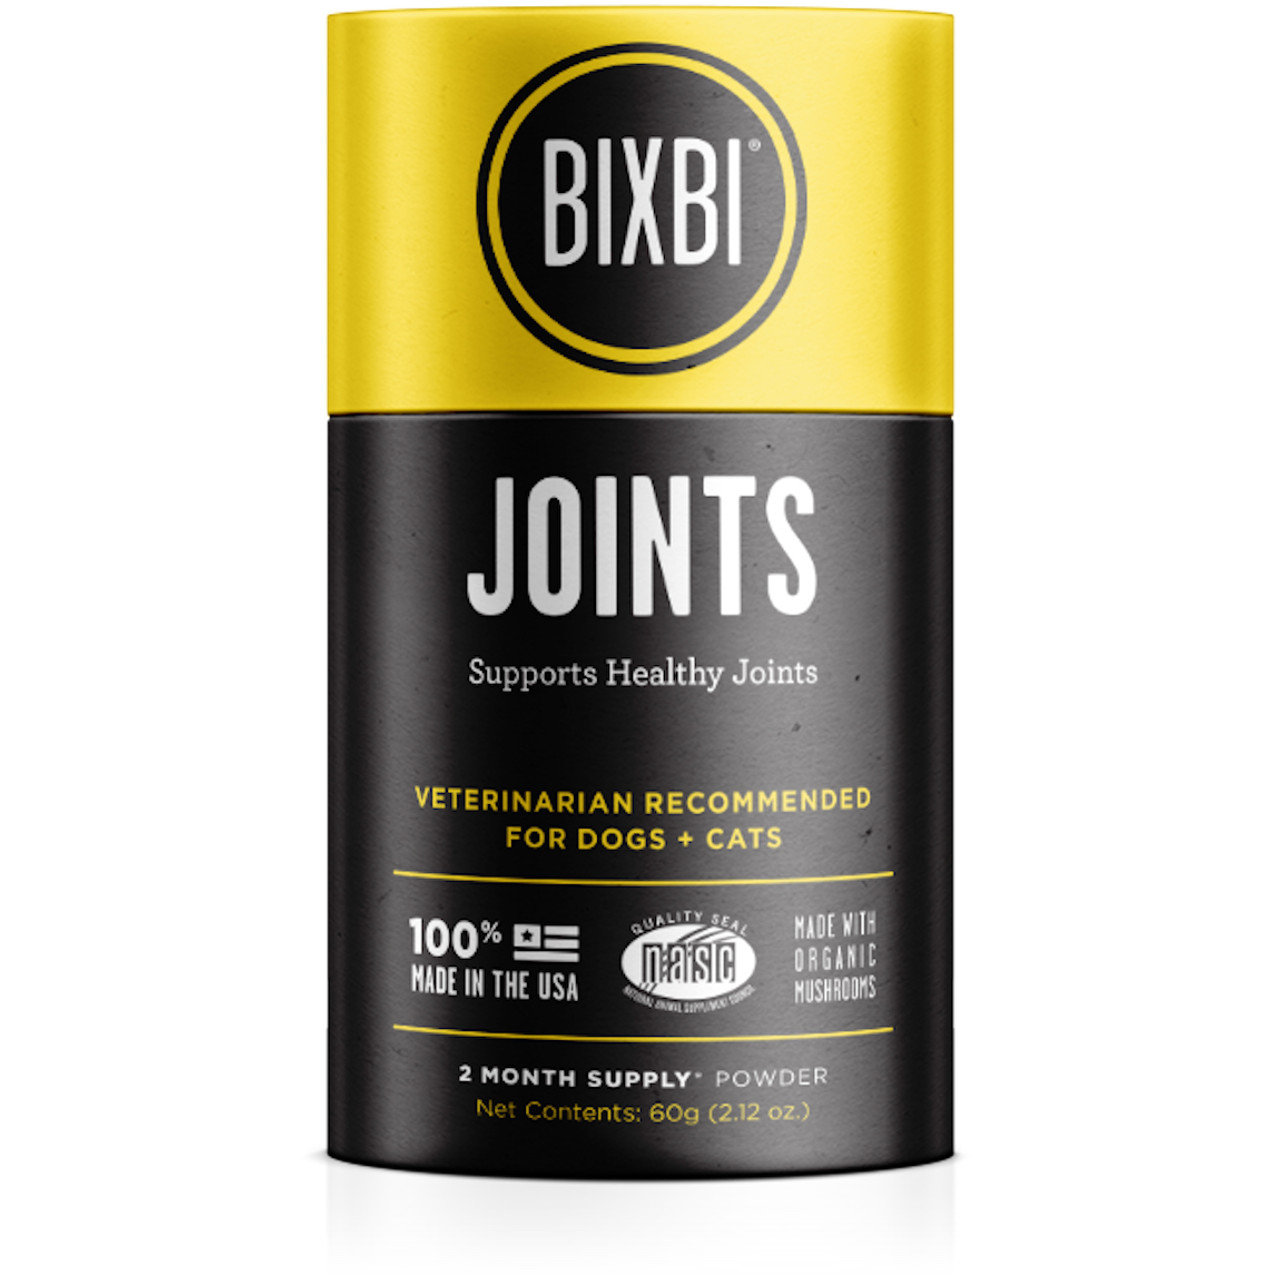 Bixbi Joints Supplement for Dogs & Cats